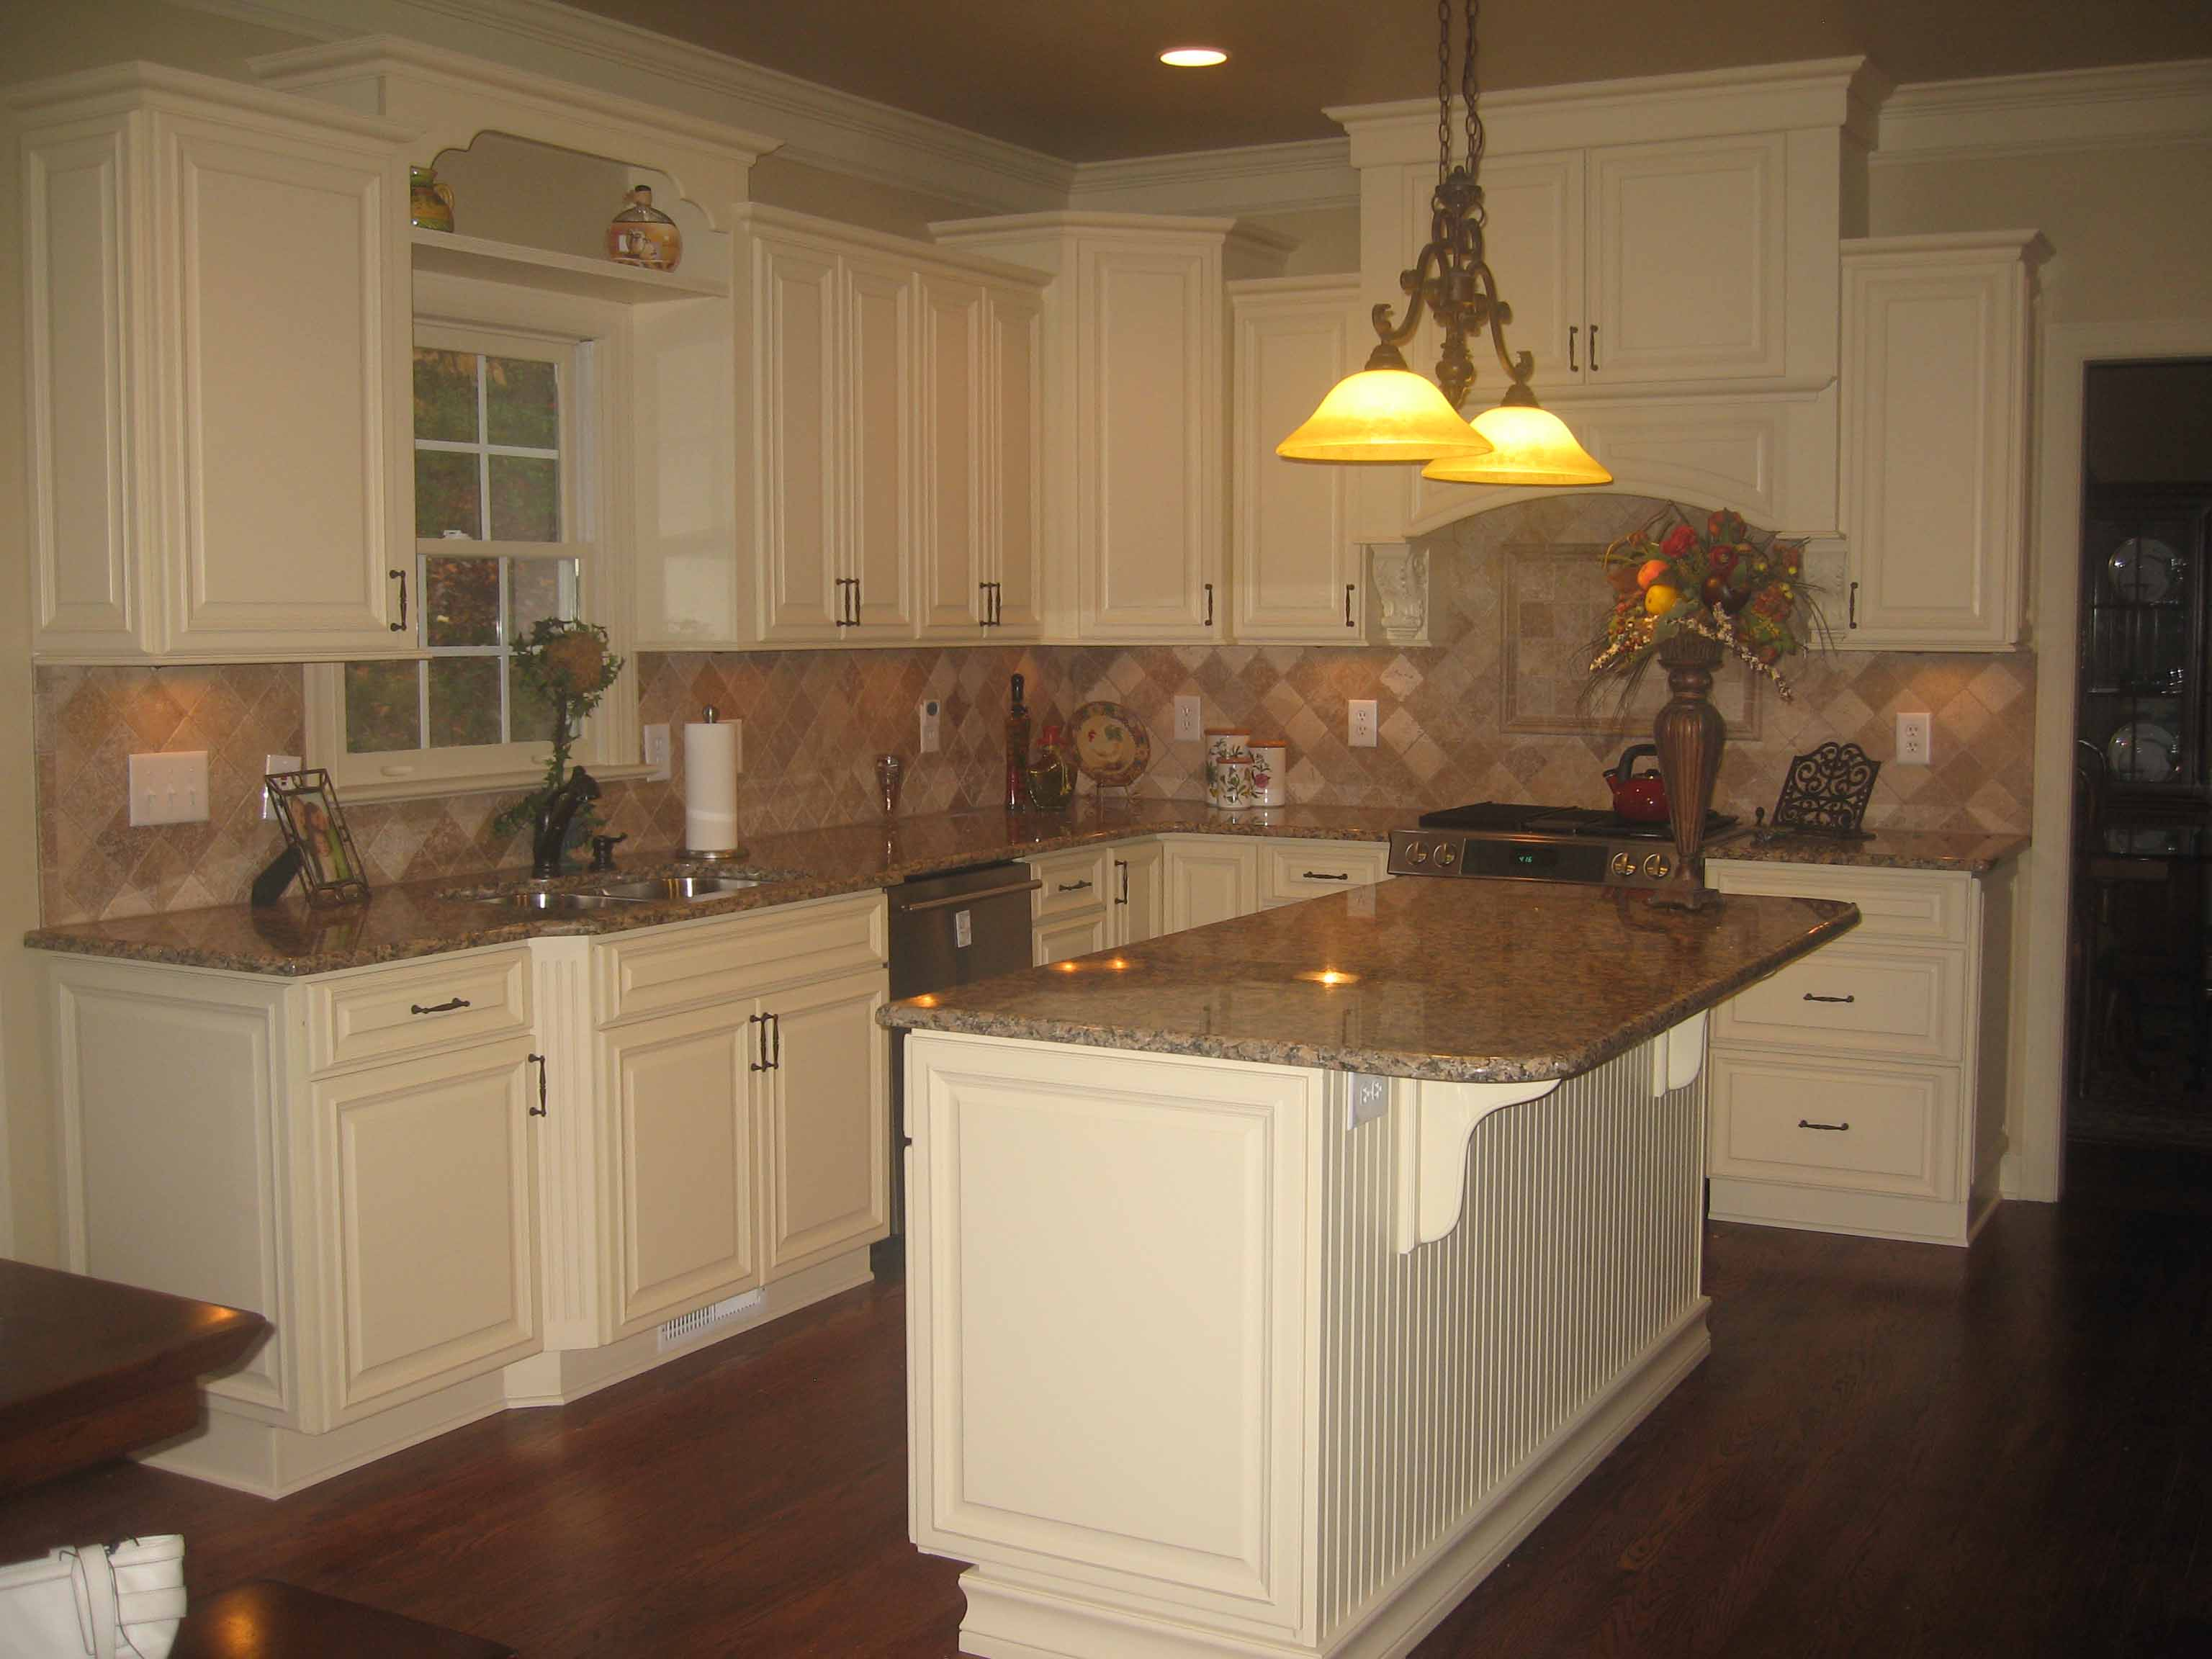 onlinecabinetsdirect wholesale kitchen cabinets Attaberry 4 White Shaker IMG copy